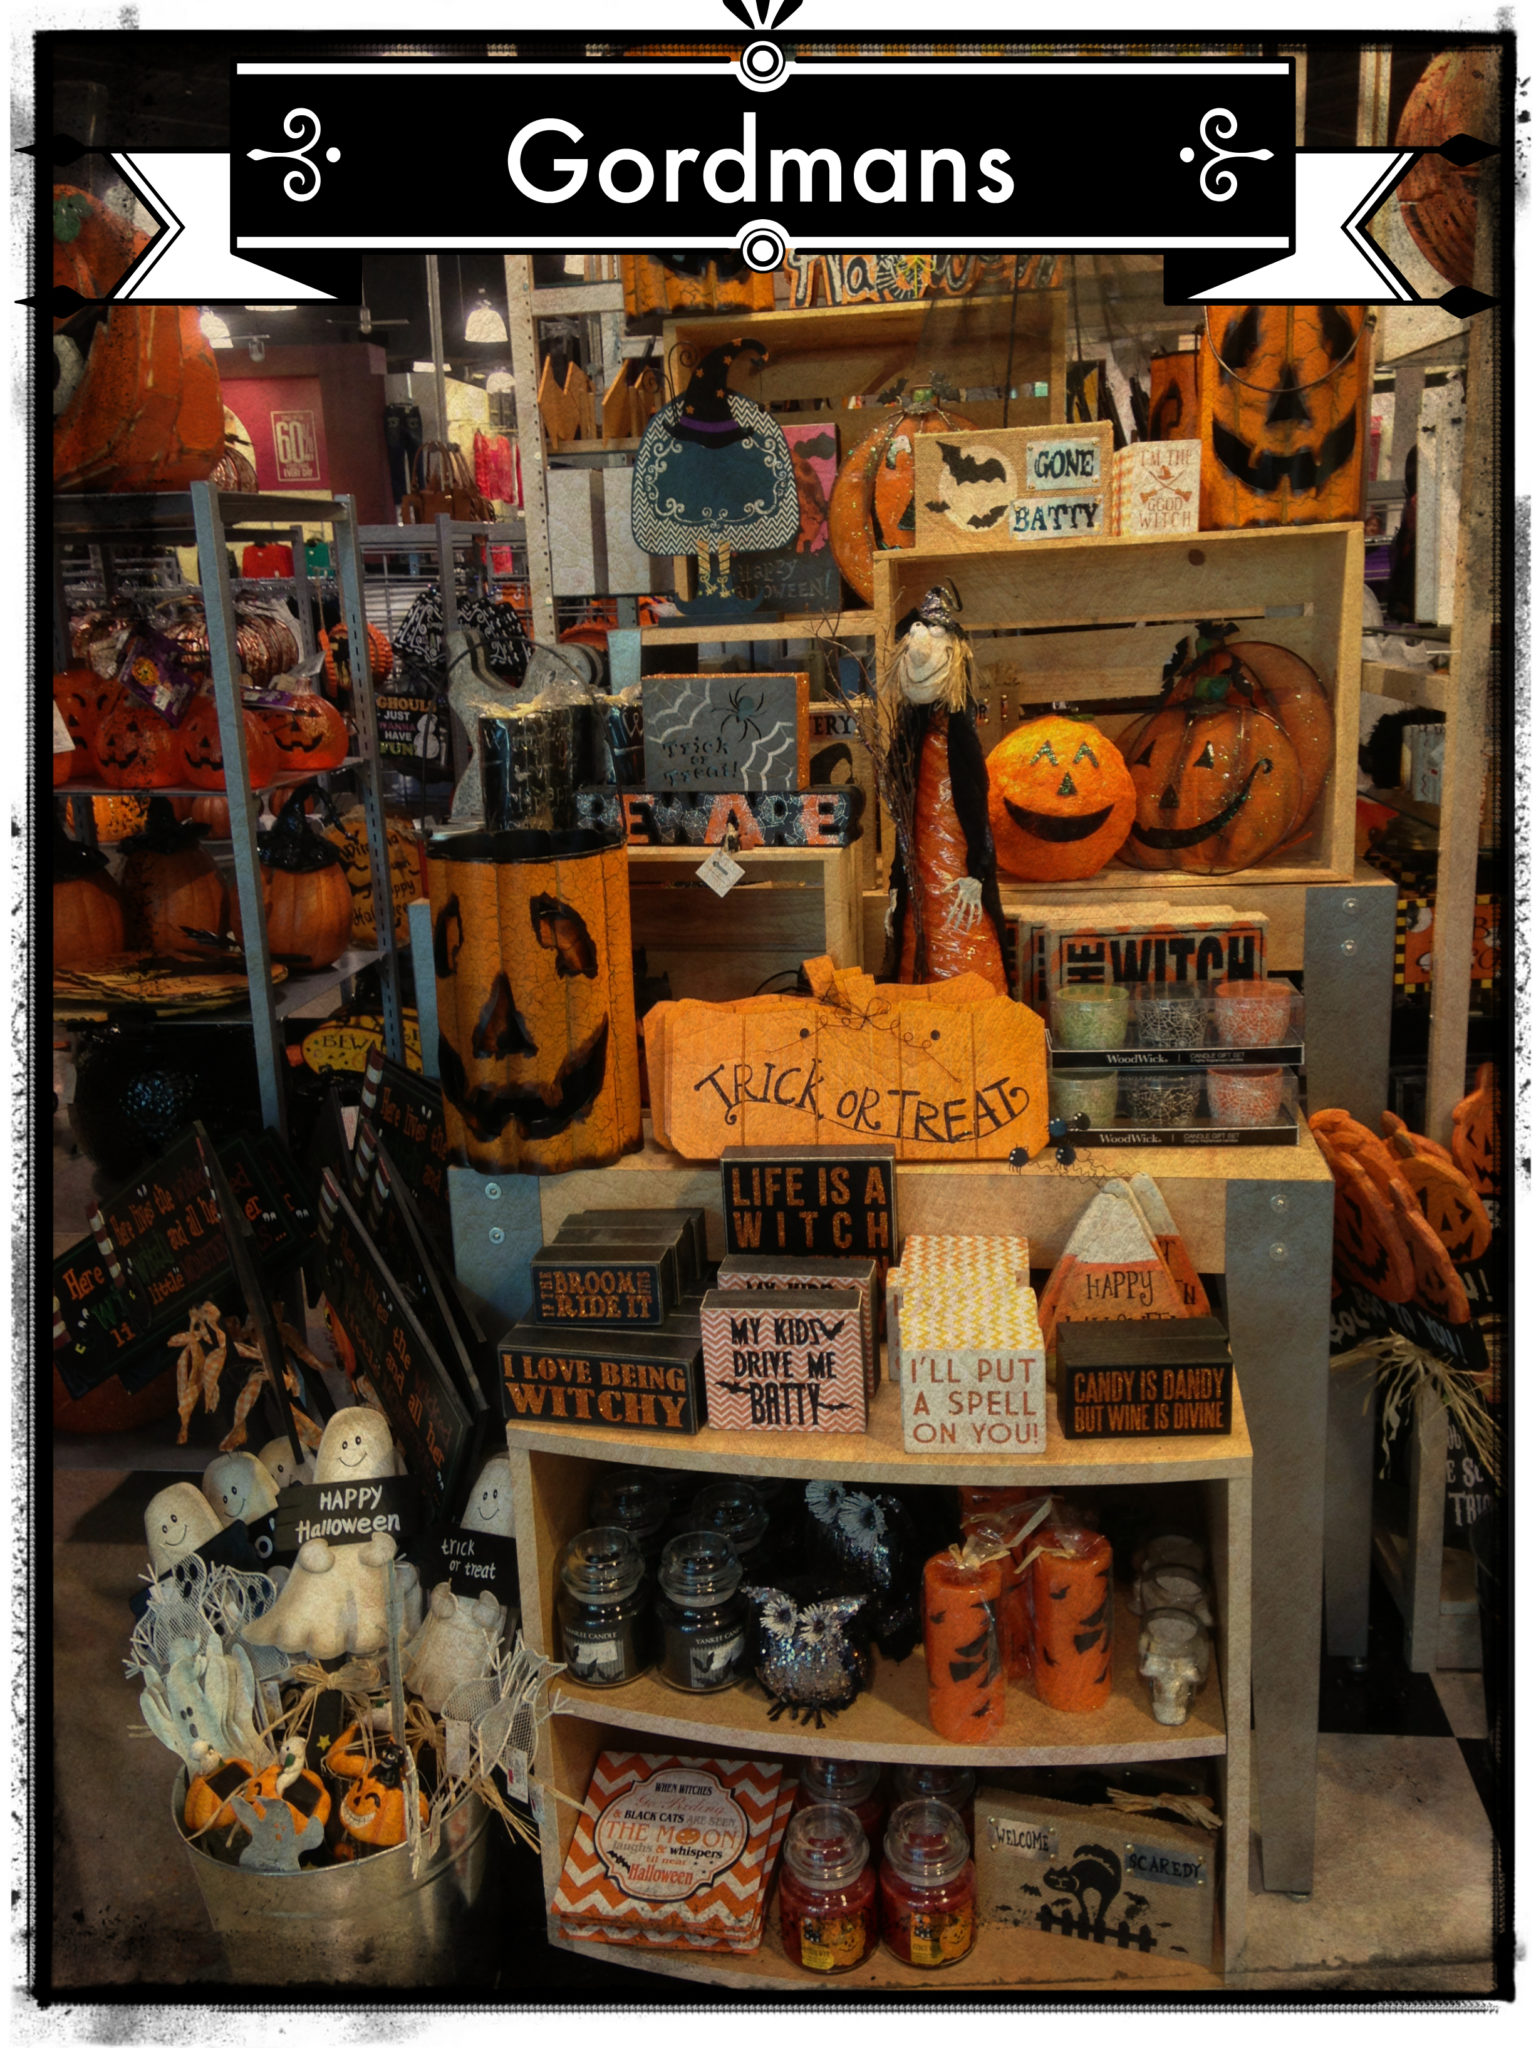 Gordmans Makes The Perfect Halloween House